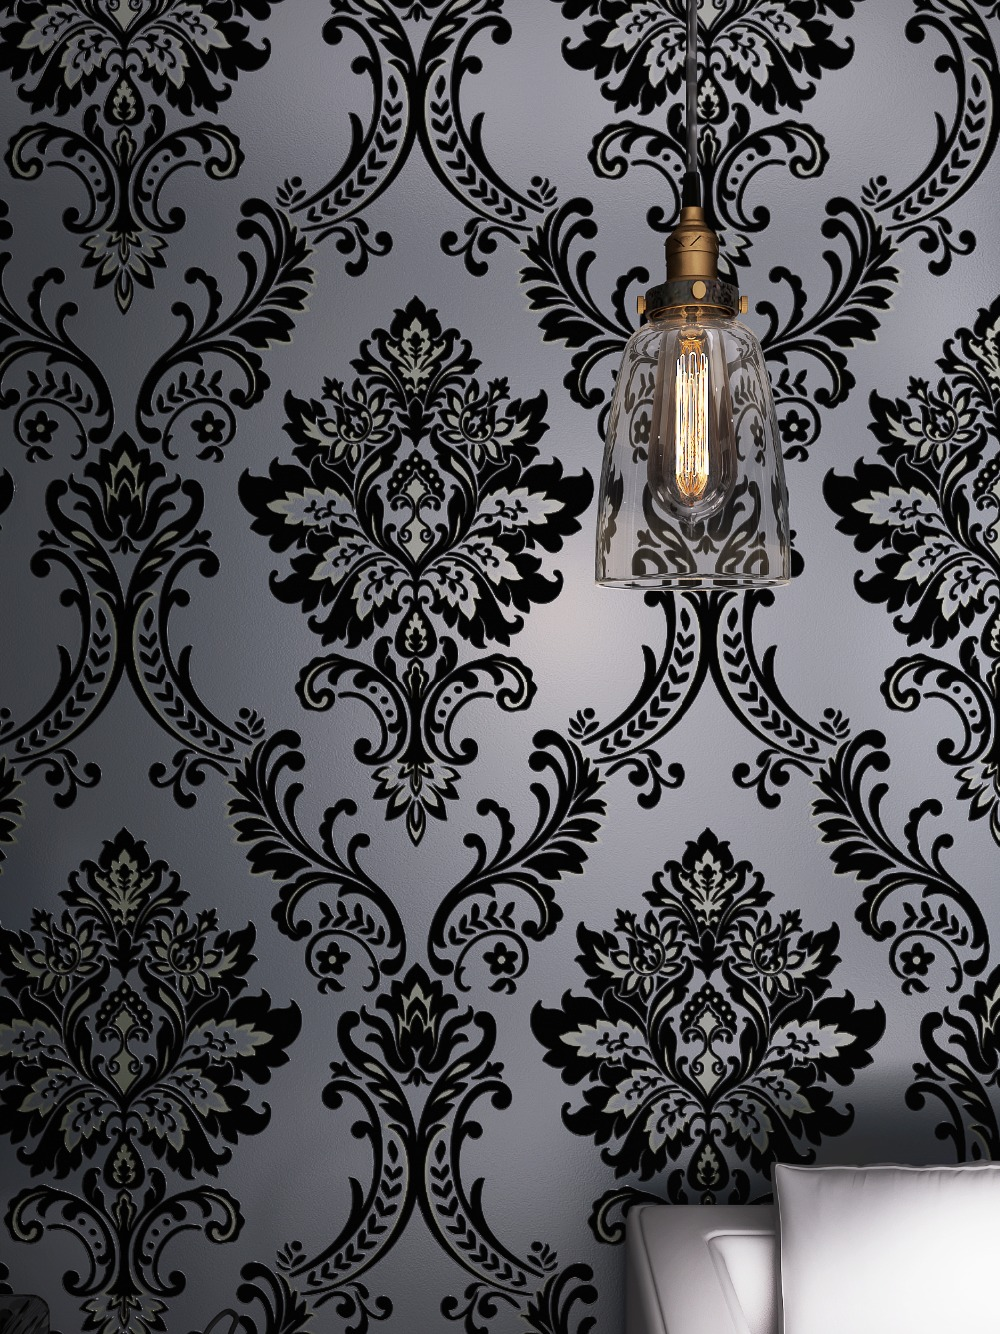 Classic Mystery Black Velvet Flocking Damask Wallpaper Textile Wallcovering купить недорого в Москве